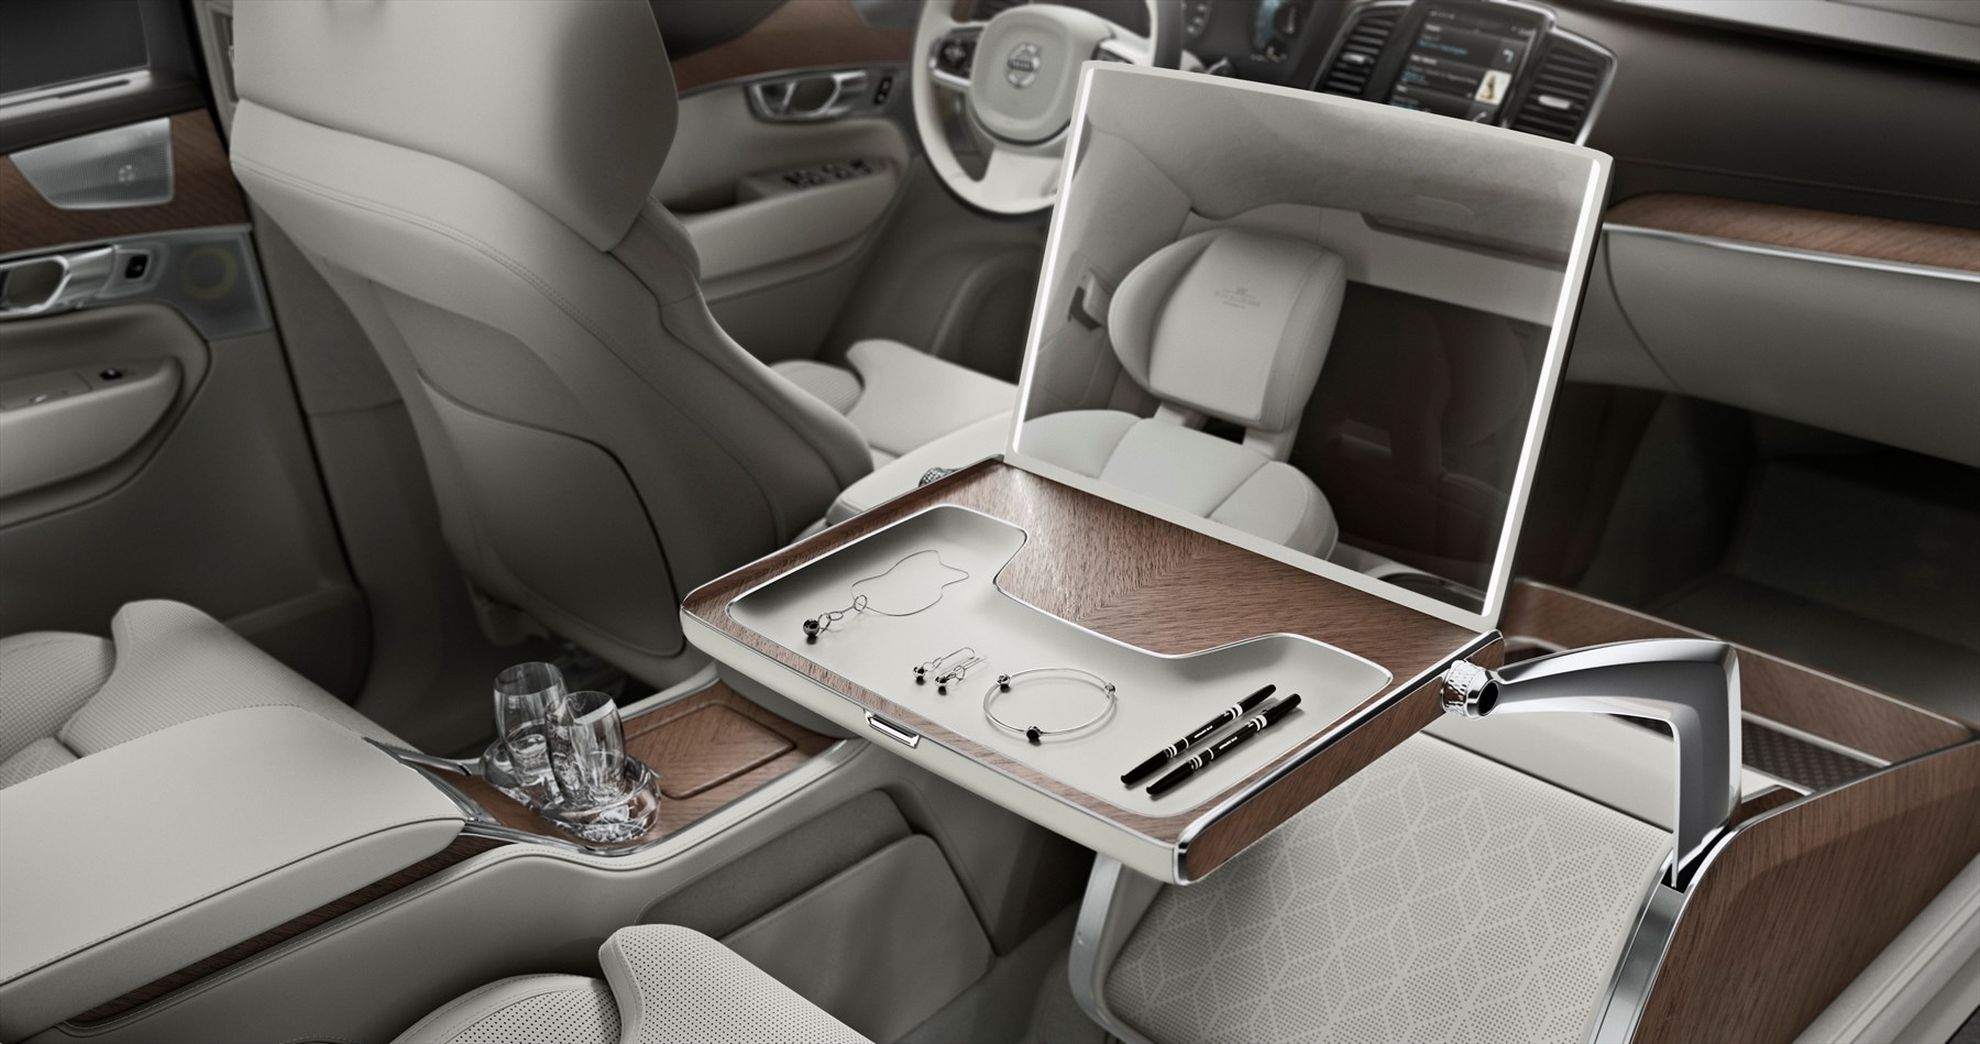 Volvo-Cars-takes-luxury-to-a-new-level-with-its-Lounge-Console-unveiled-in-Shanghai-3